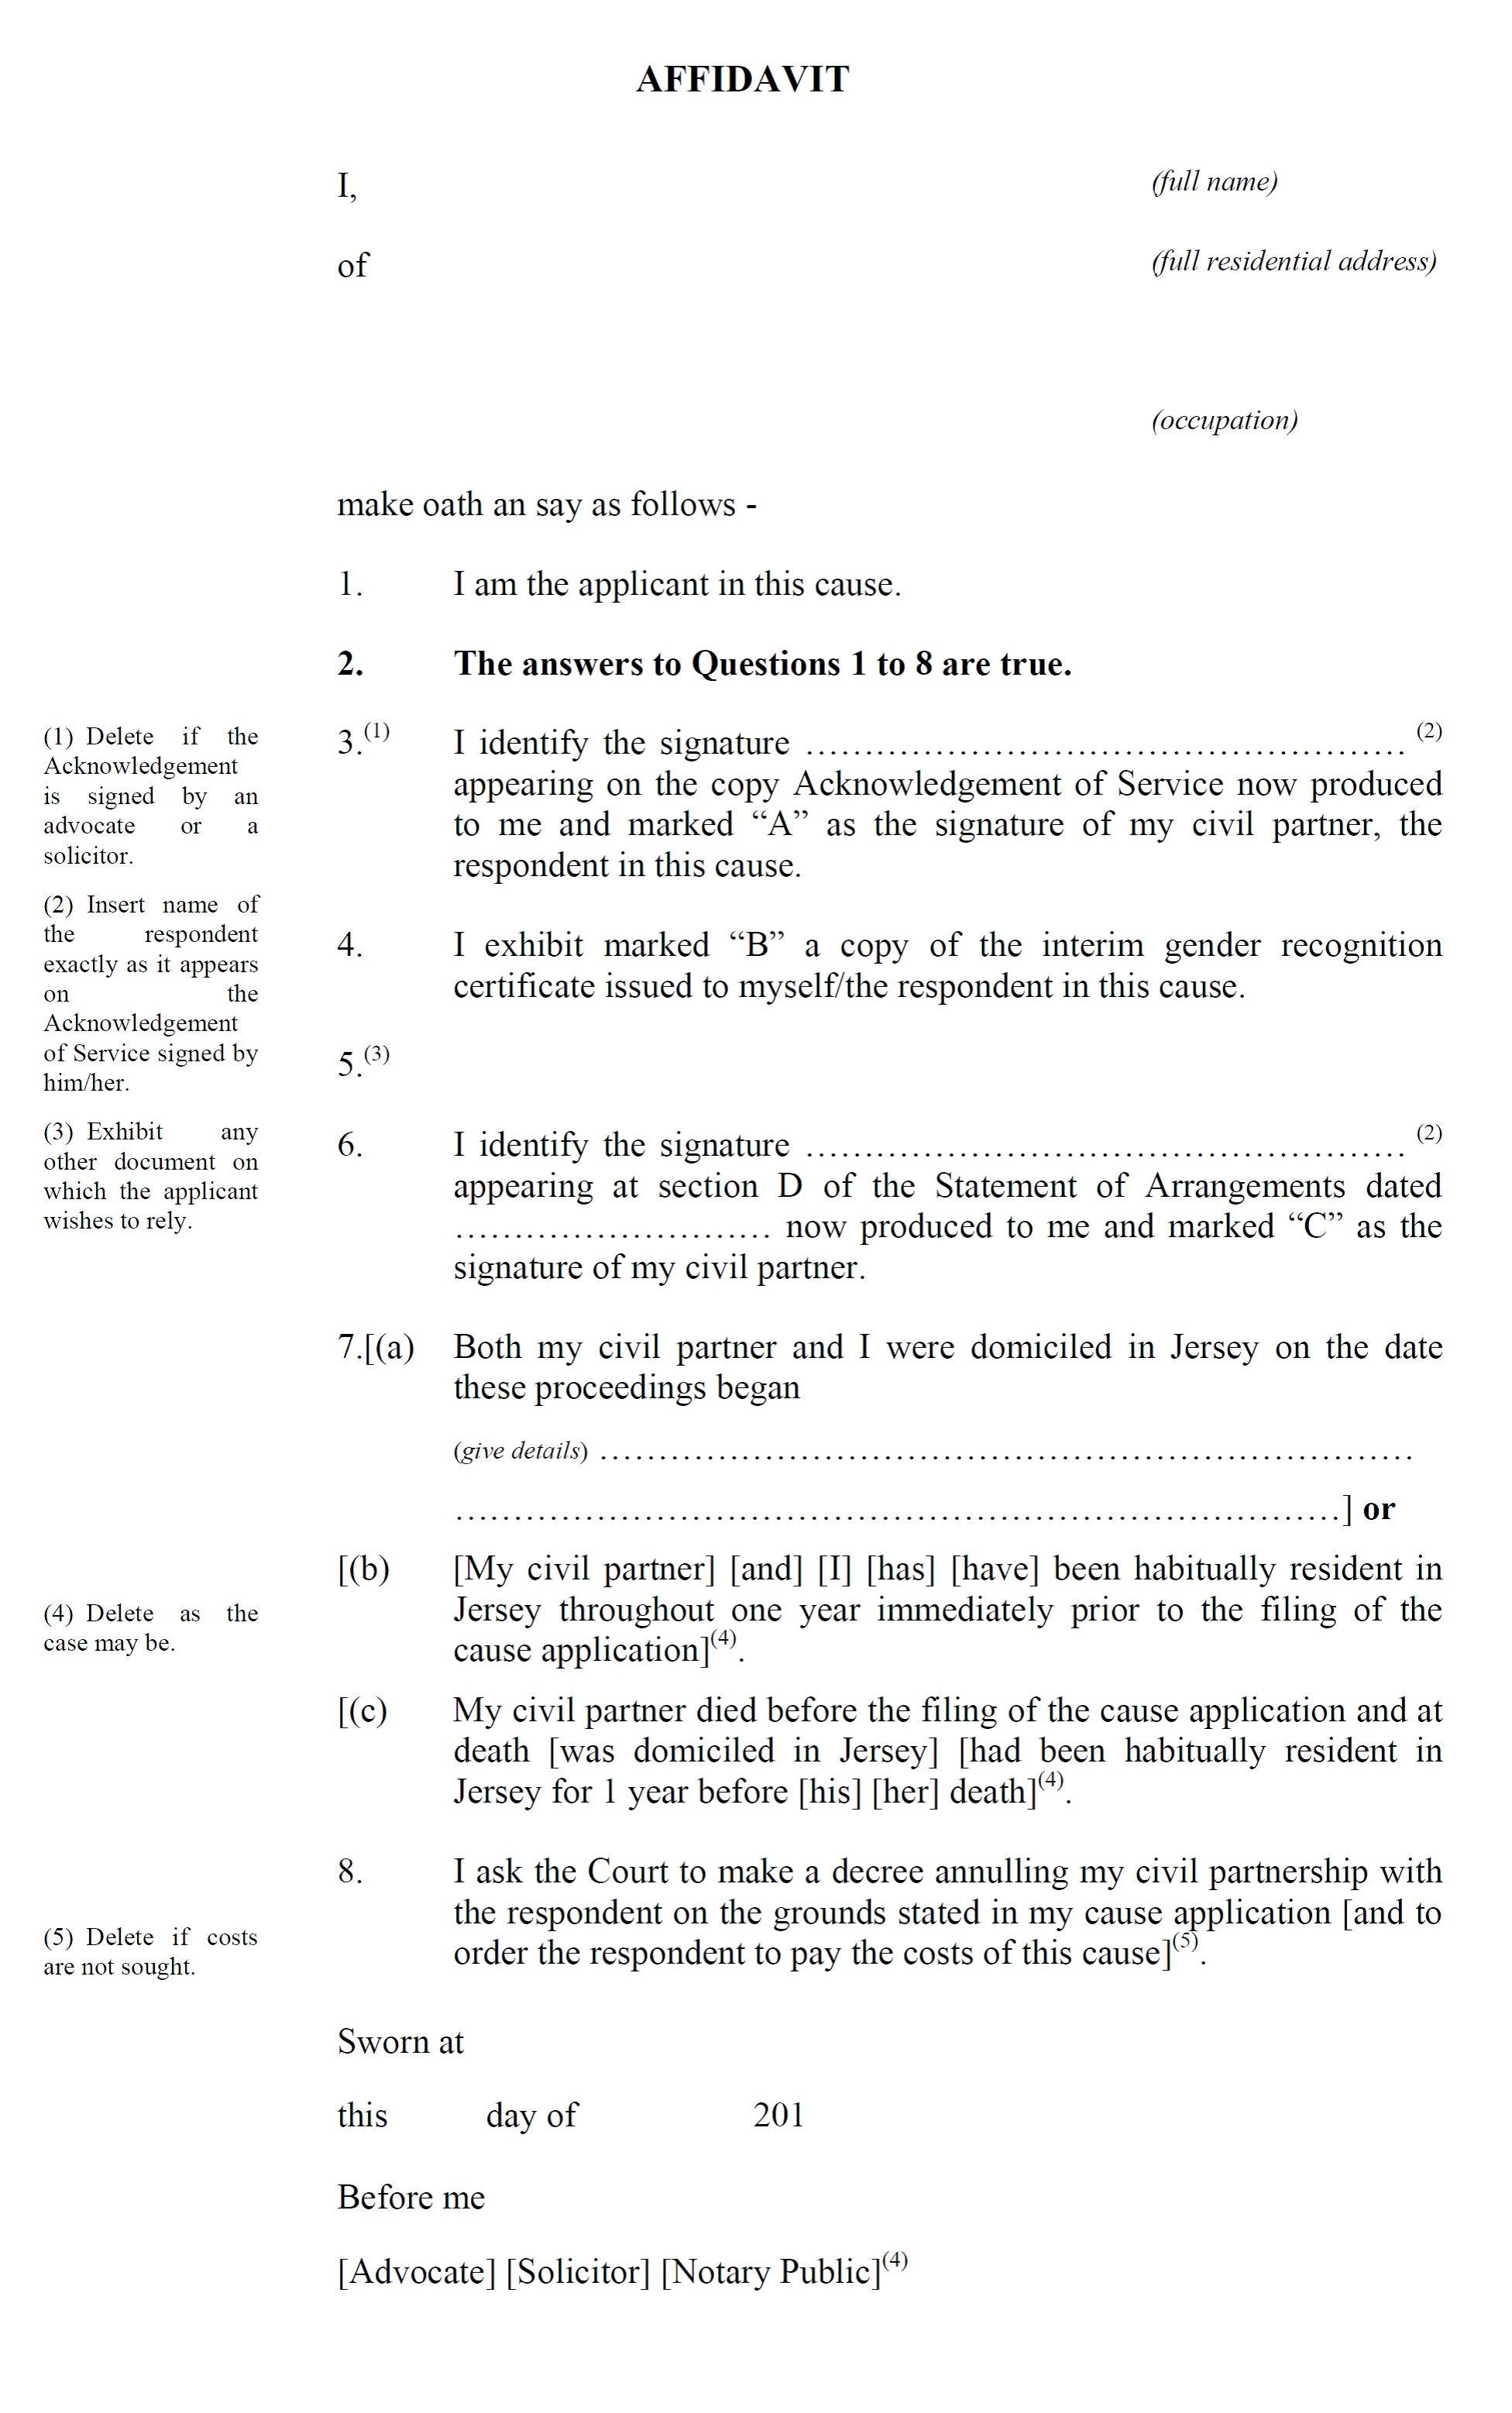 Form CP8 - Affidavit by applicant in support of cause application for annulment under Article 28(c)(i) of the Civil Partnership (Jersey) Law 2012 - continued